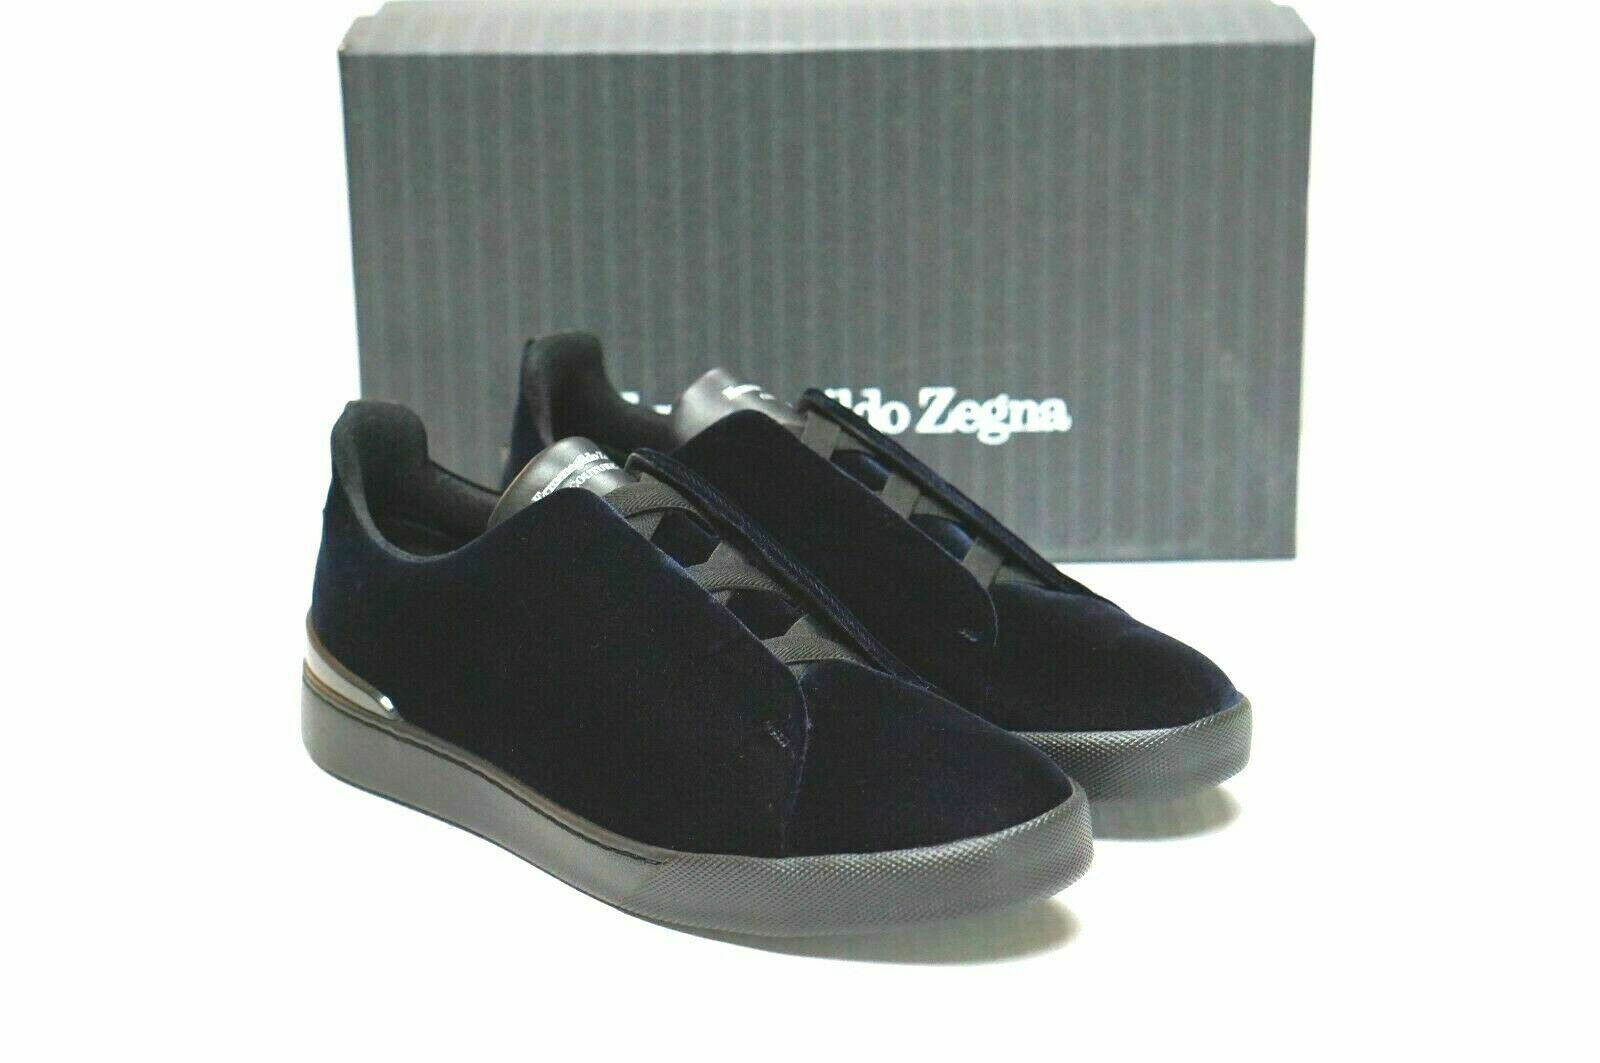 ERMENEGILDO ZEGNA Velours Bleu Triple Stitch Slip-On Baskets Taille 12 11 EU NEW